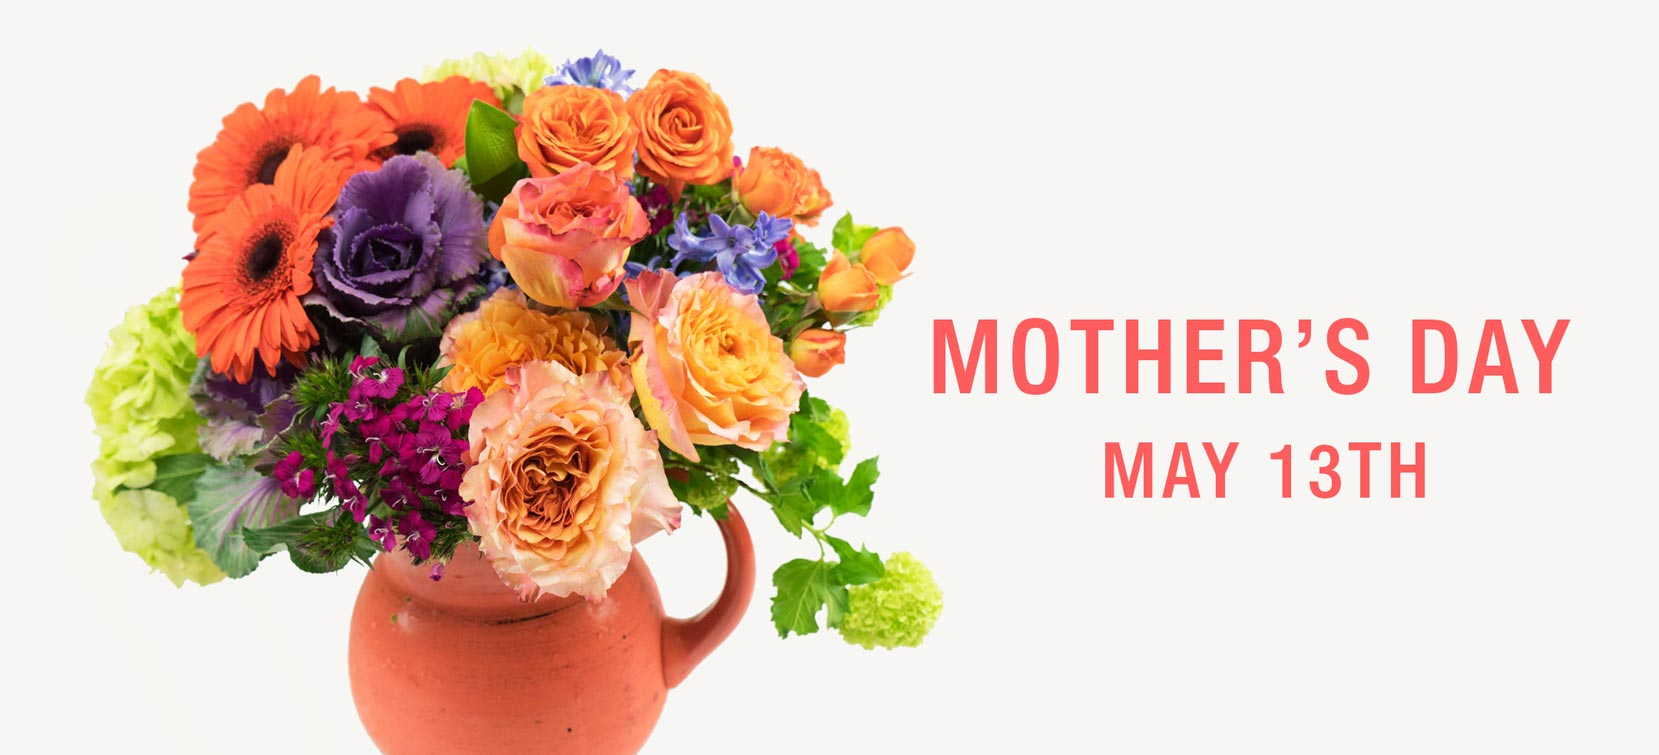 Mother's Day May 13th